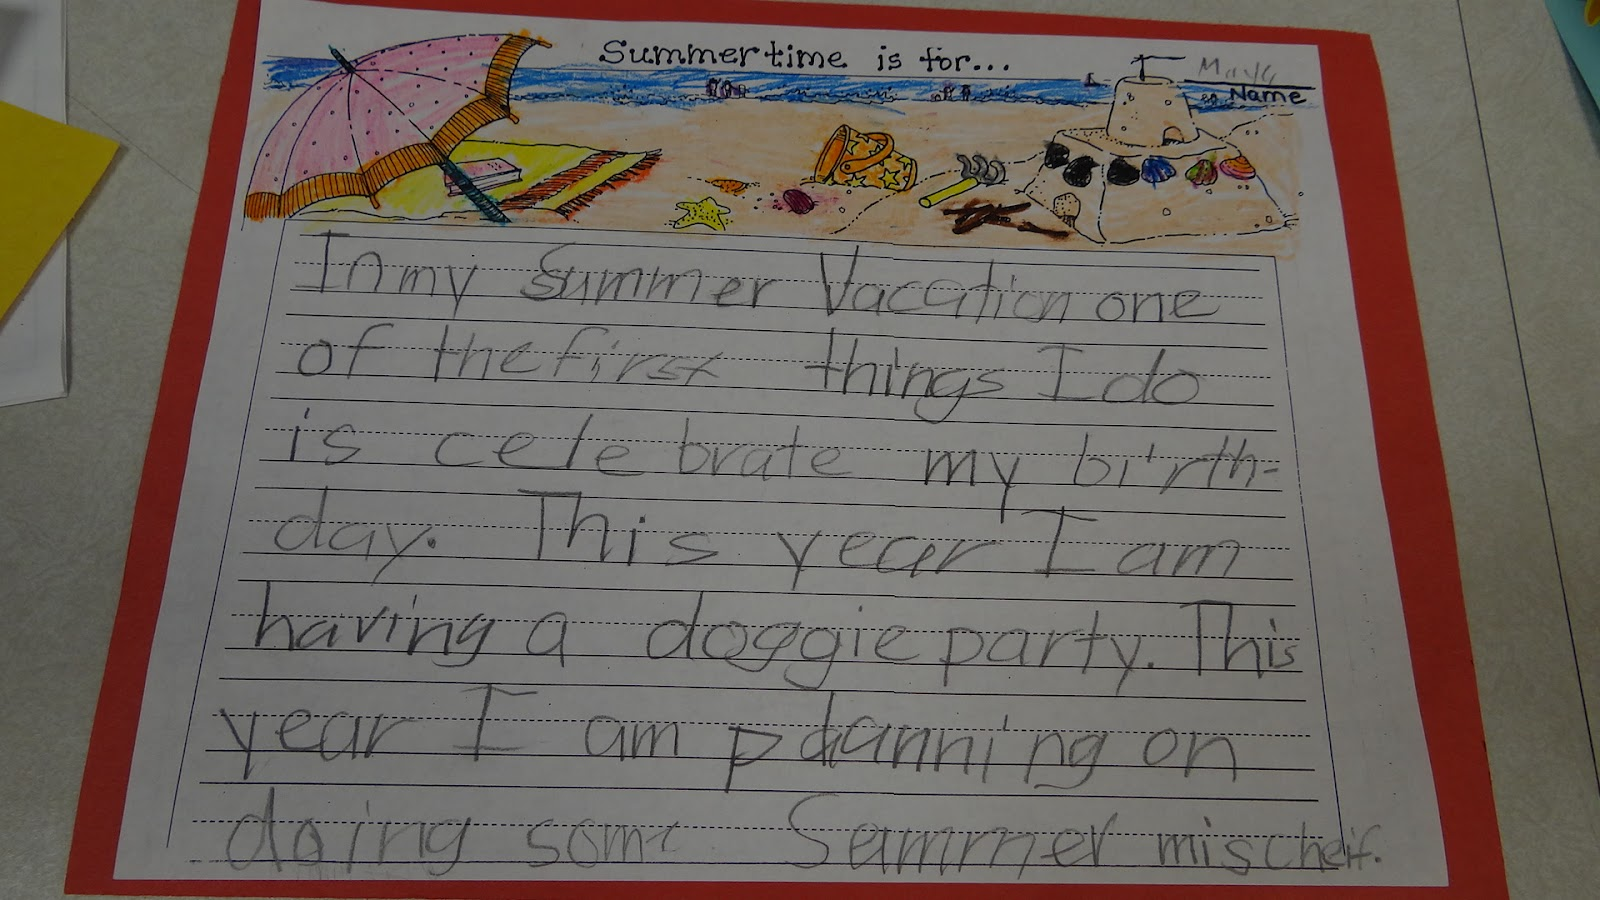 essay about summer holidays Everyone has his very own experience of a perfect summer vacation in this essay sample the author describes how he spent his last summer.